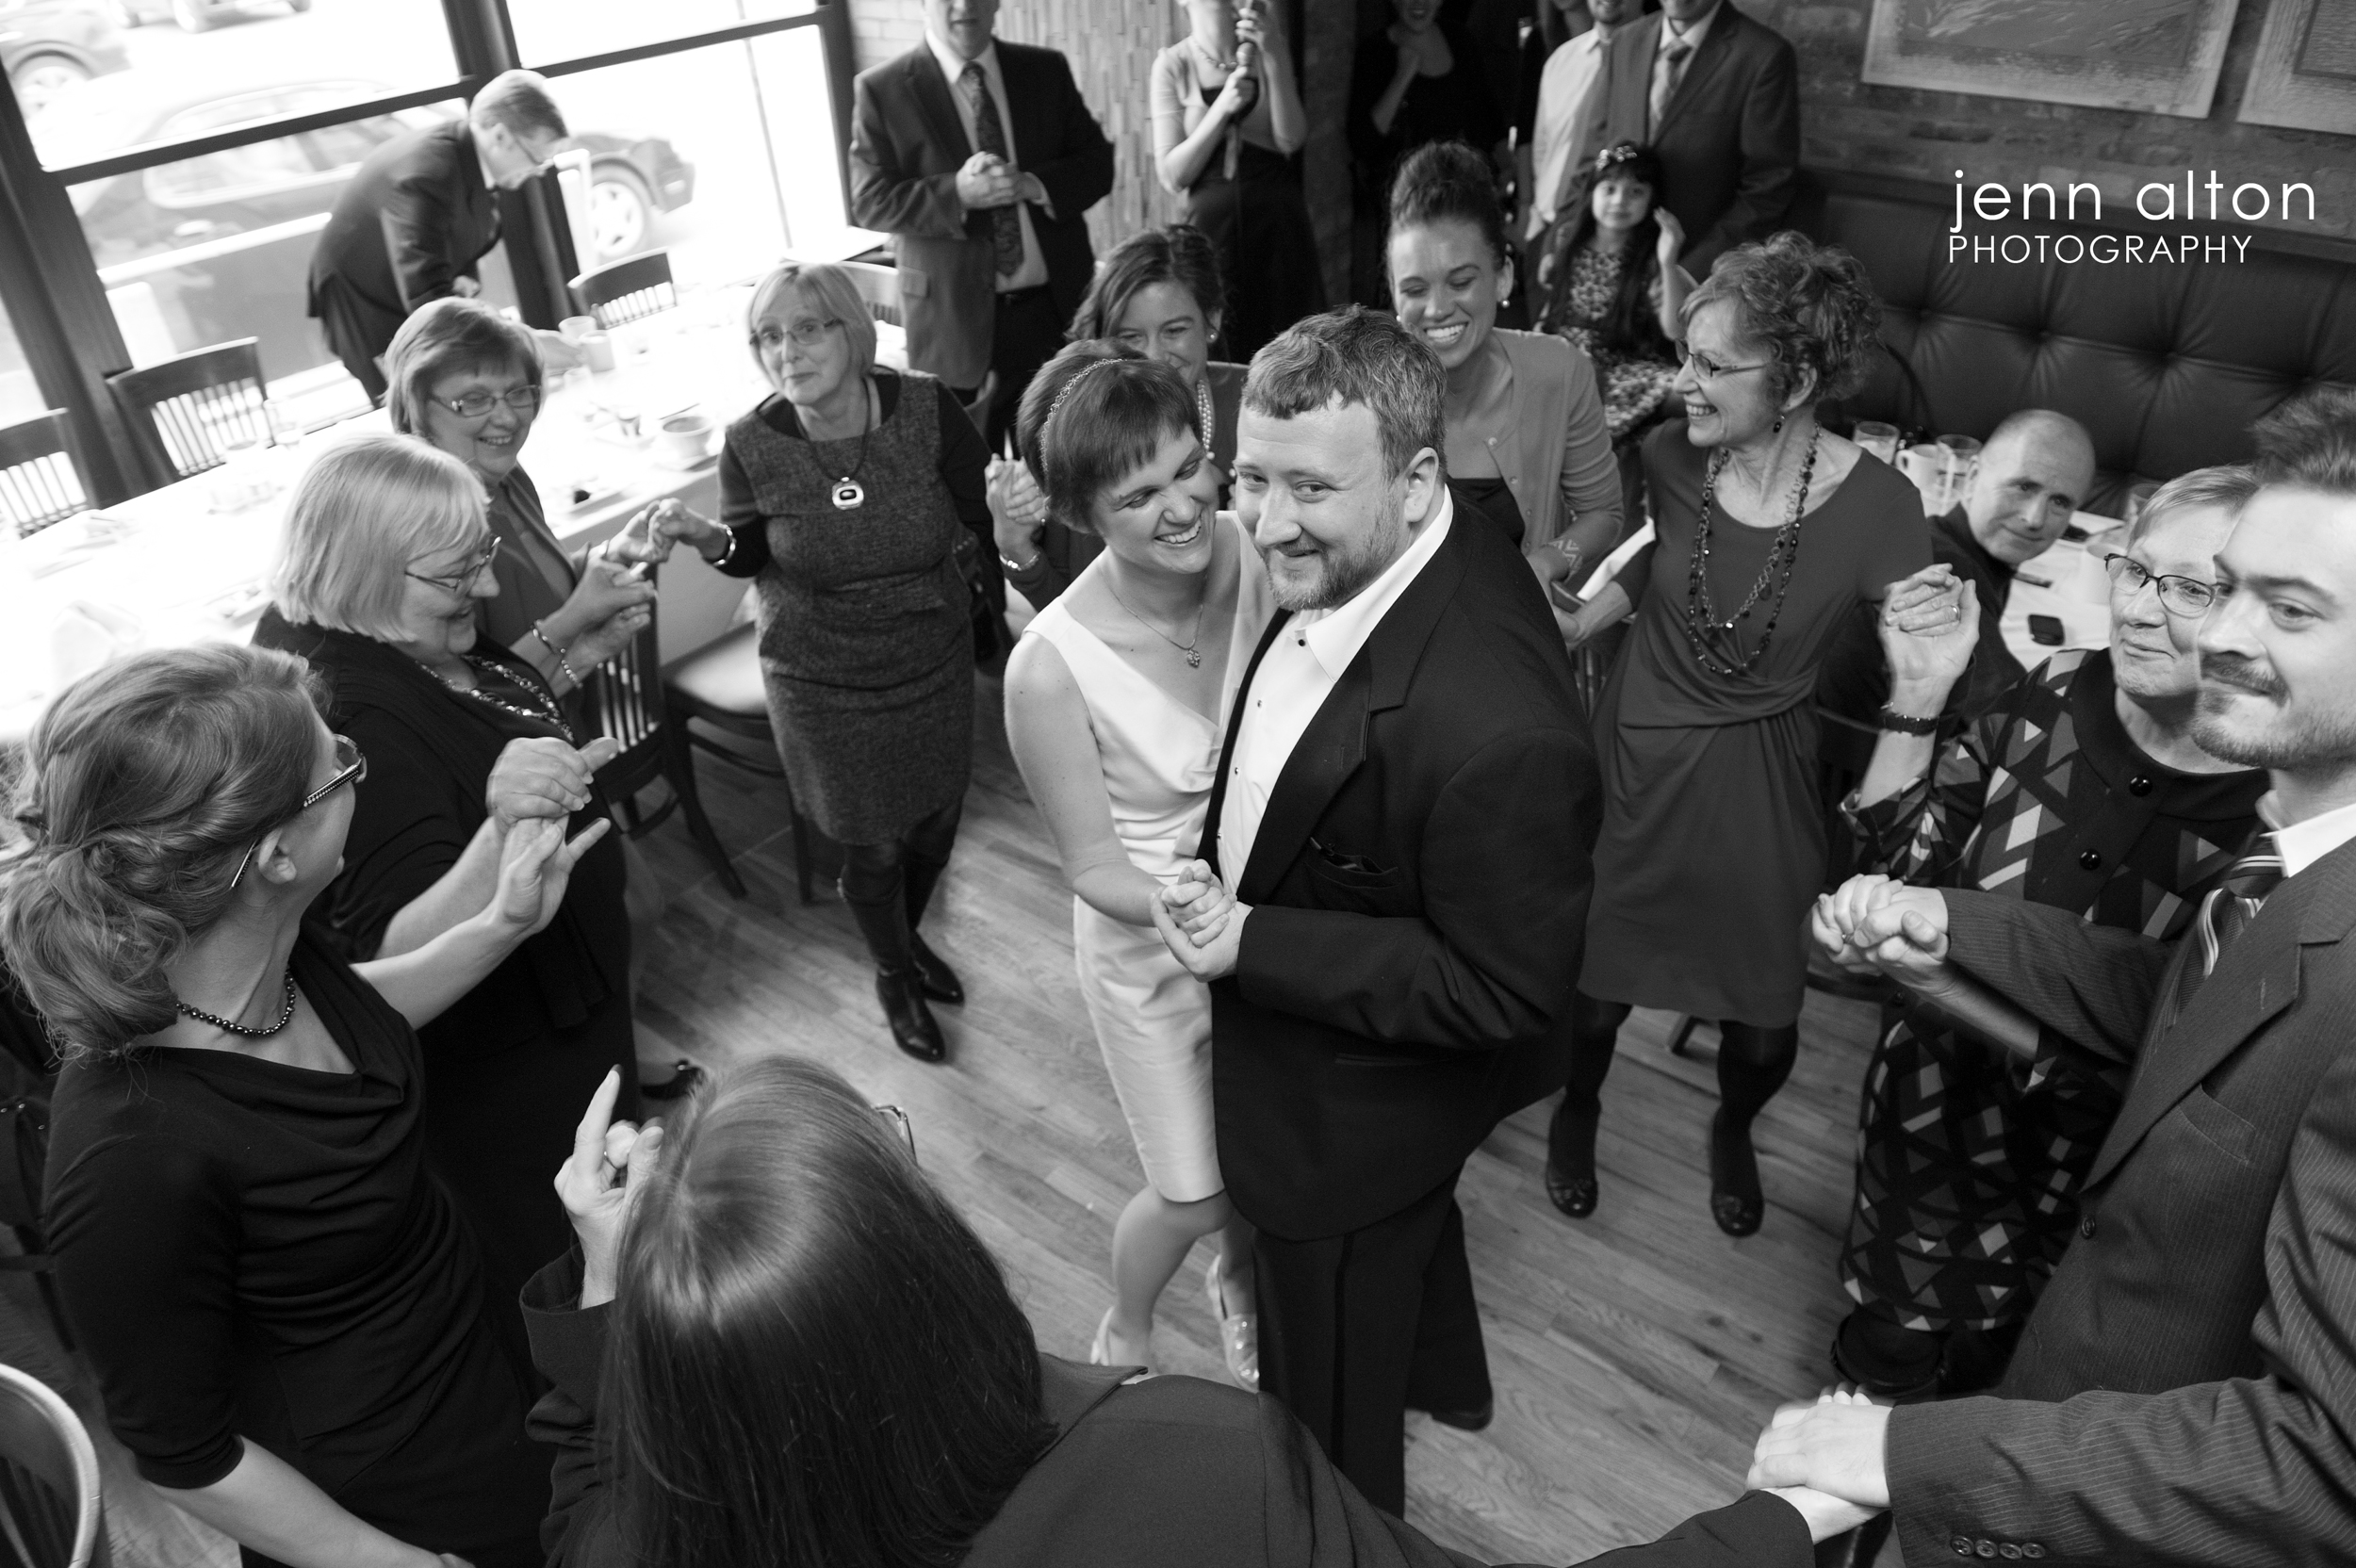 Bride, groom and and family dancing, Uncommon Ground on Devon, Chicago, IL.